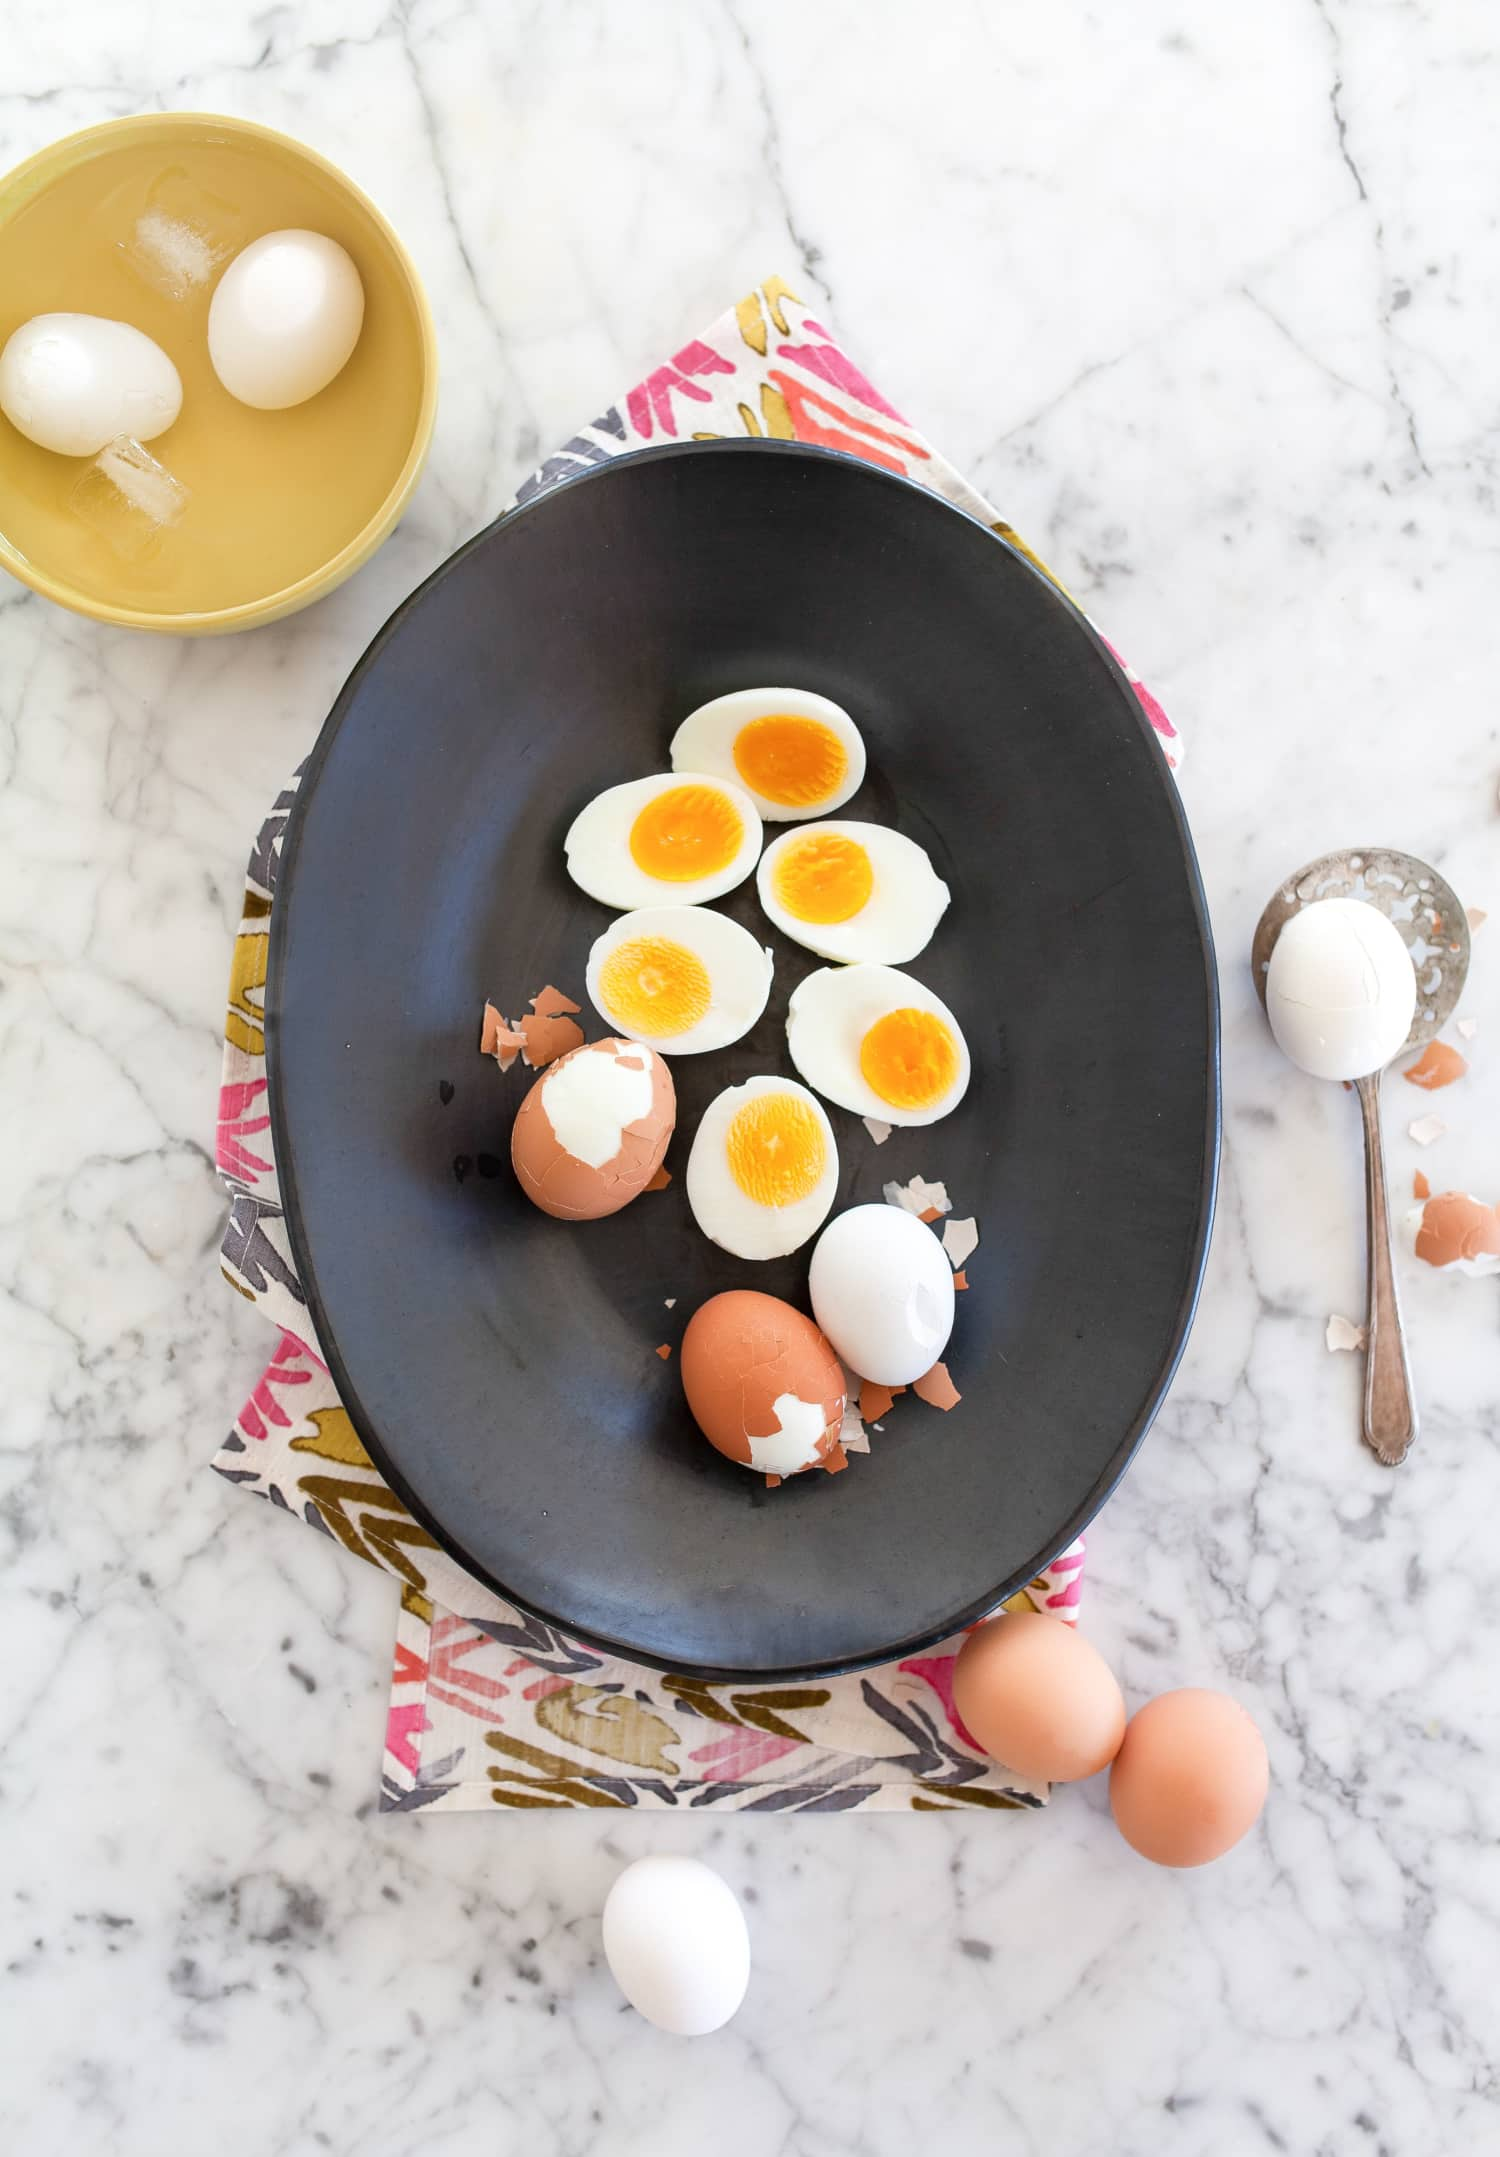 7 Ways to Use up Hard-Boiled Eggs